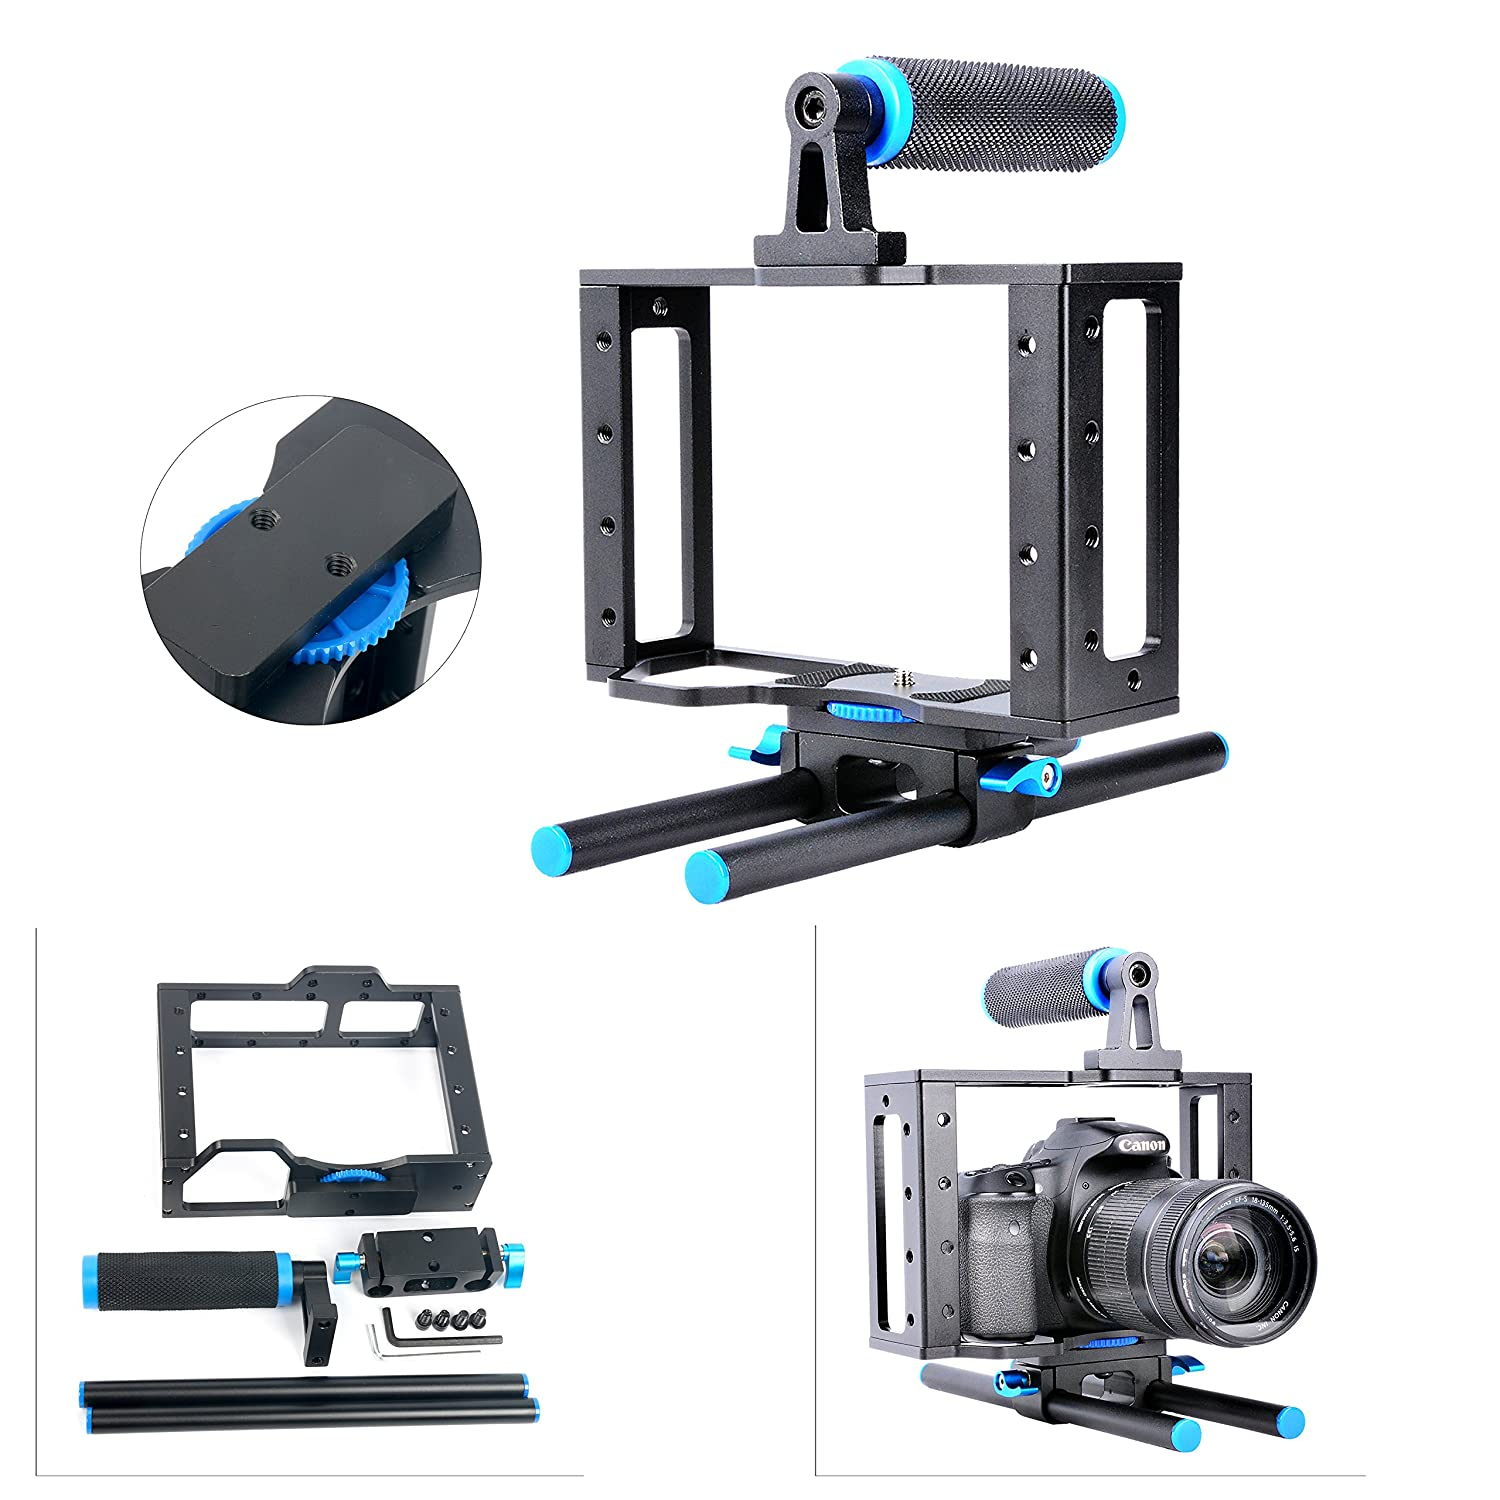 YaeCCC Aluminum DSLR Camera Cage Kit With 15mm Rod Rig For Nikon Pentax Canon Sony and Other DSLR Camera to Mount Microphones, Monitor, Sound Recorders, Top Handle, Tripod, Follow Focus Yaemart Corportation